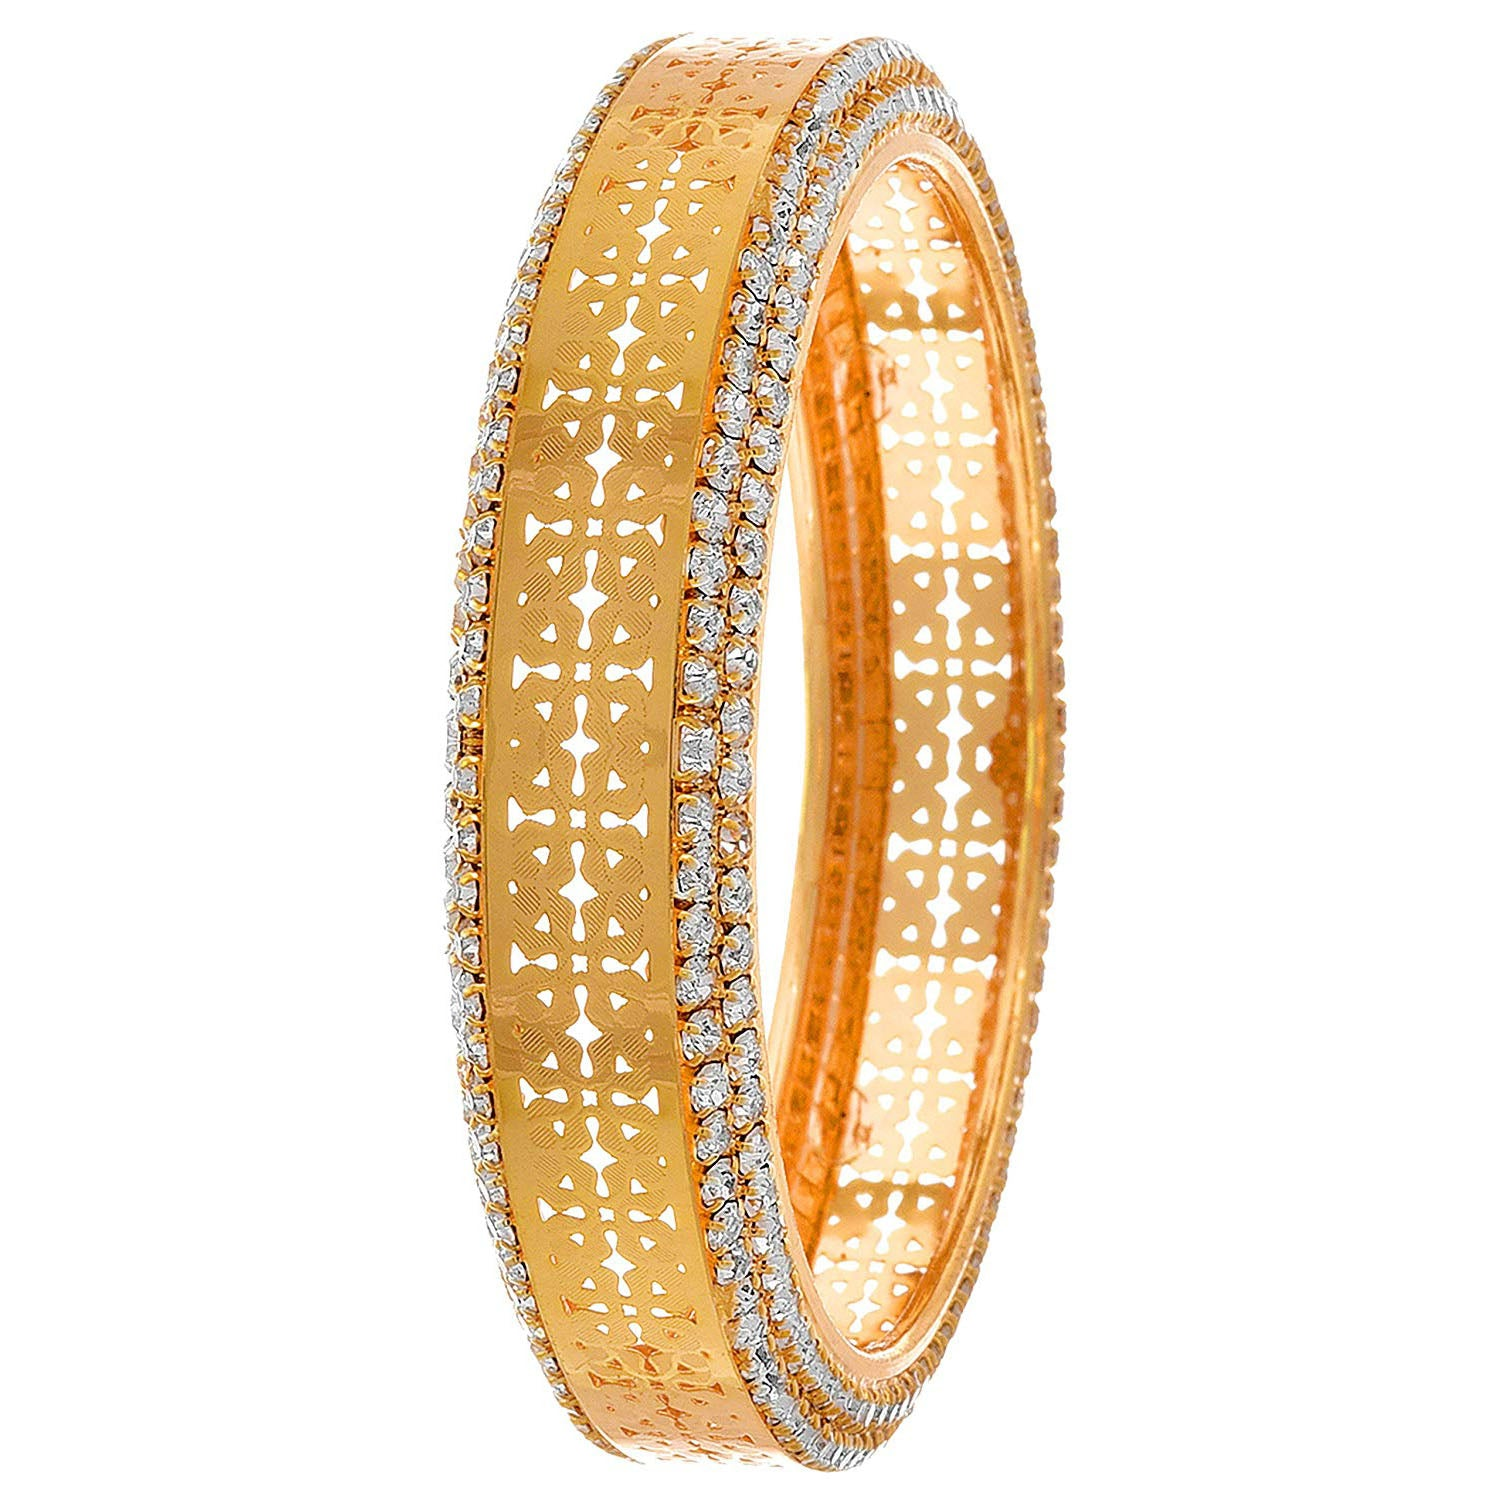 Traditional Ethnic One Gram Gold Plated Austrian Diamond Designer Bangle for Women & Girls.